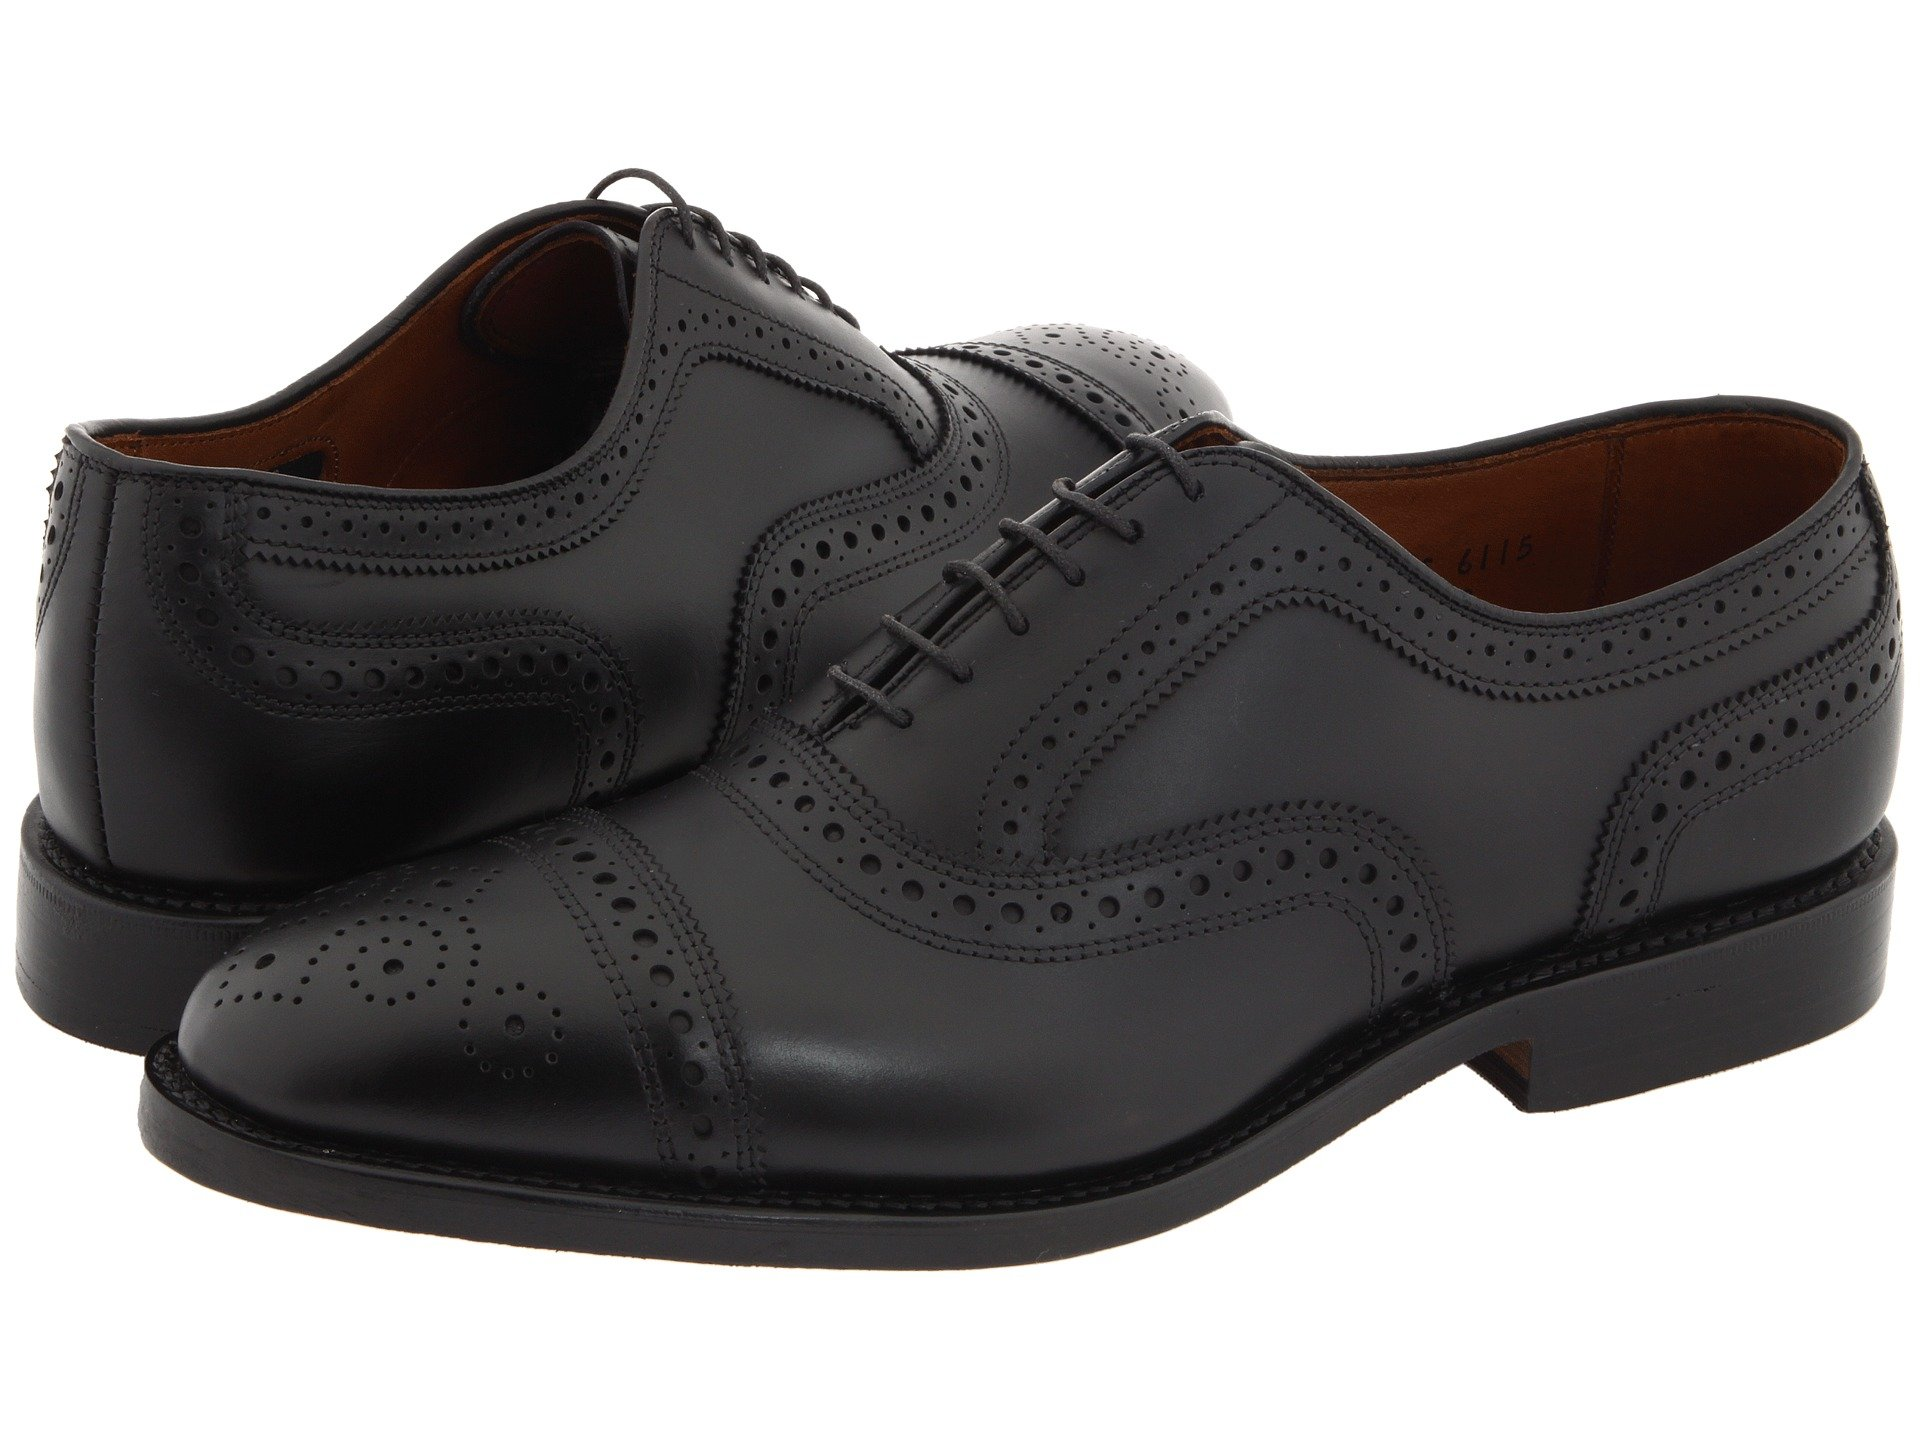 Allen Edmonds Strand in Black Calf